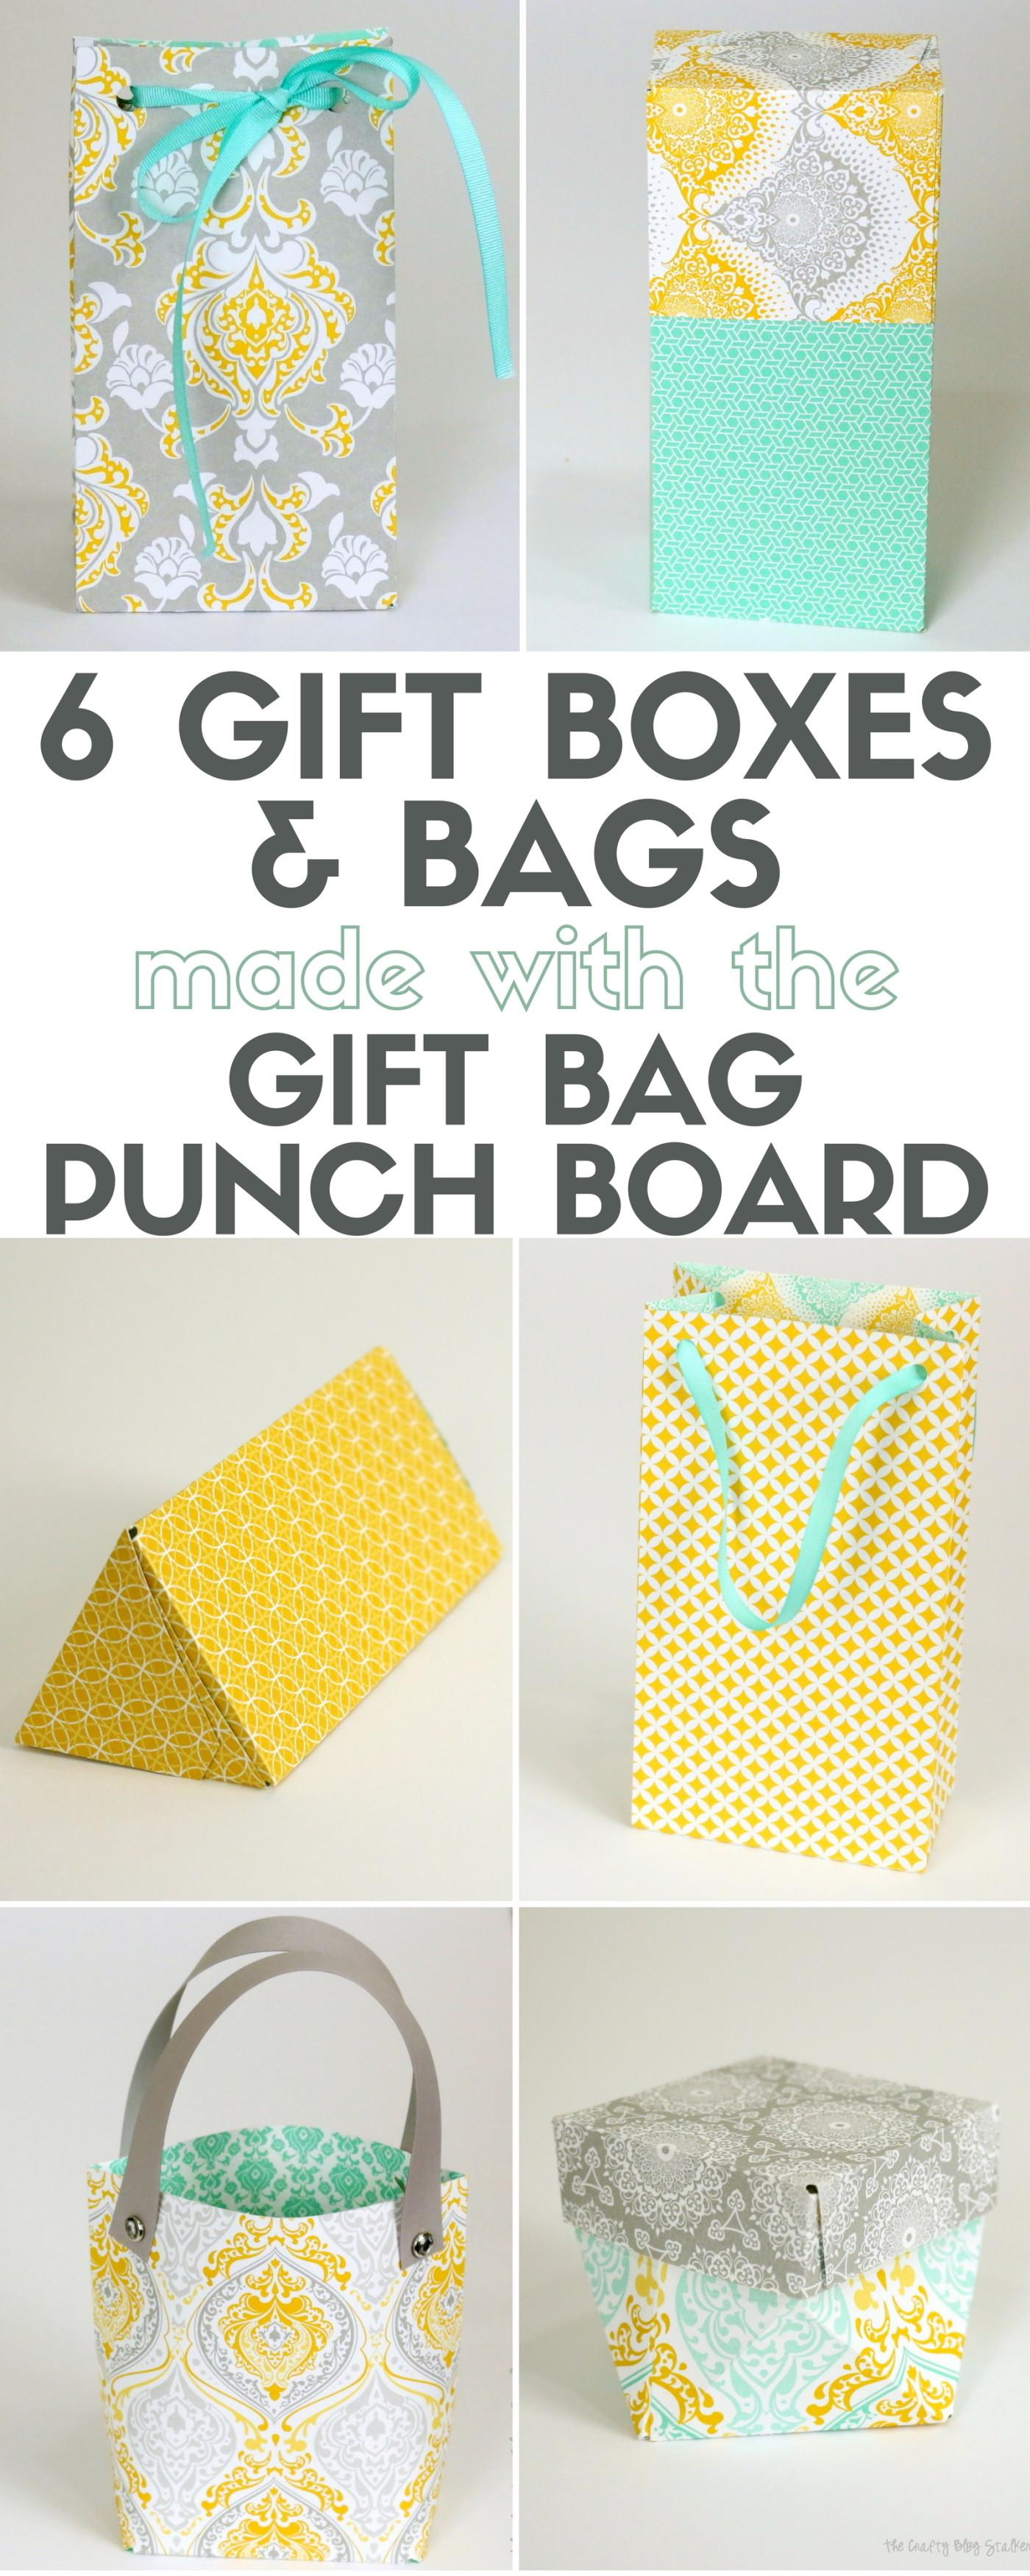 Gift Boxes Bags Made Bag Punch Board